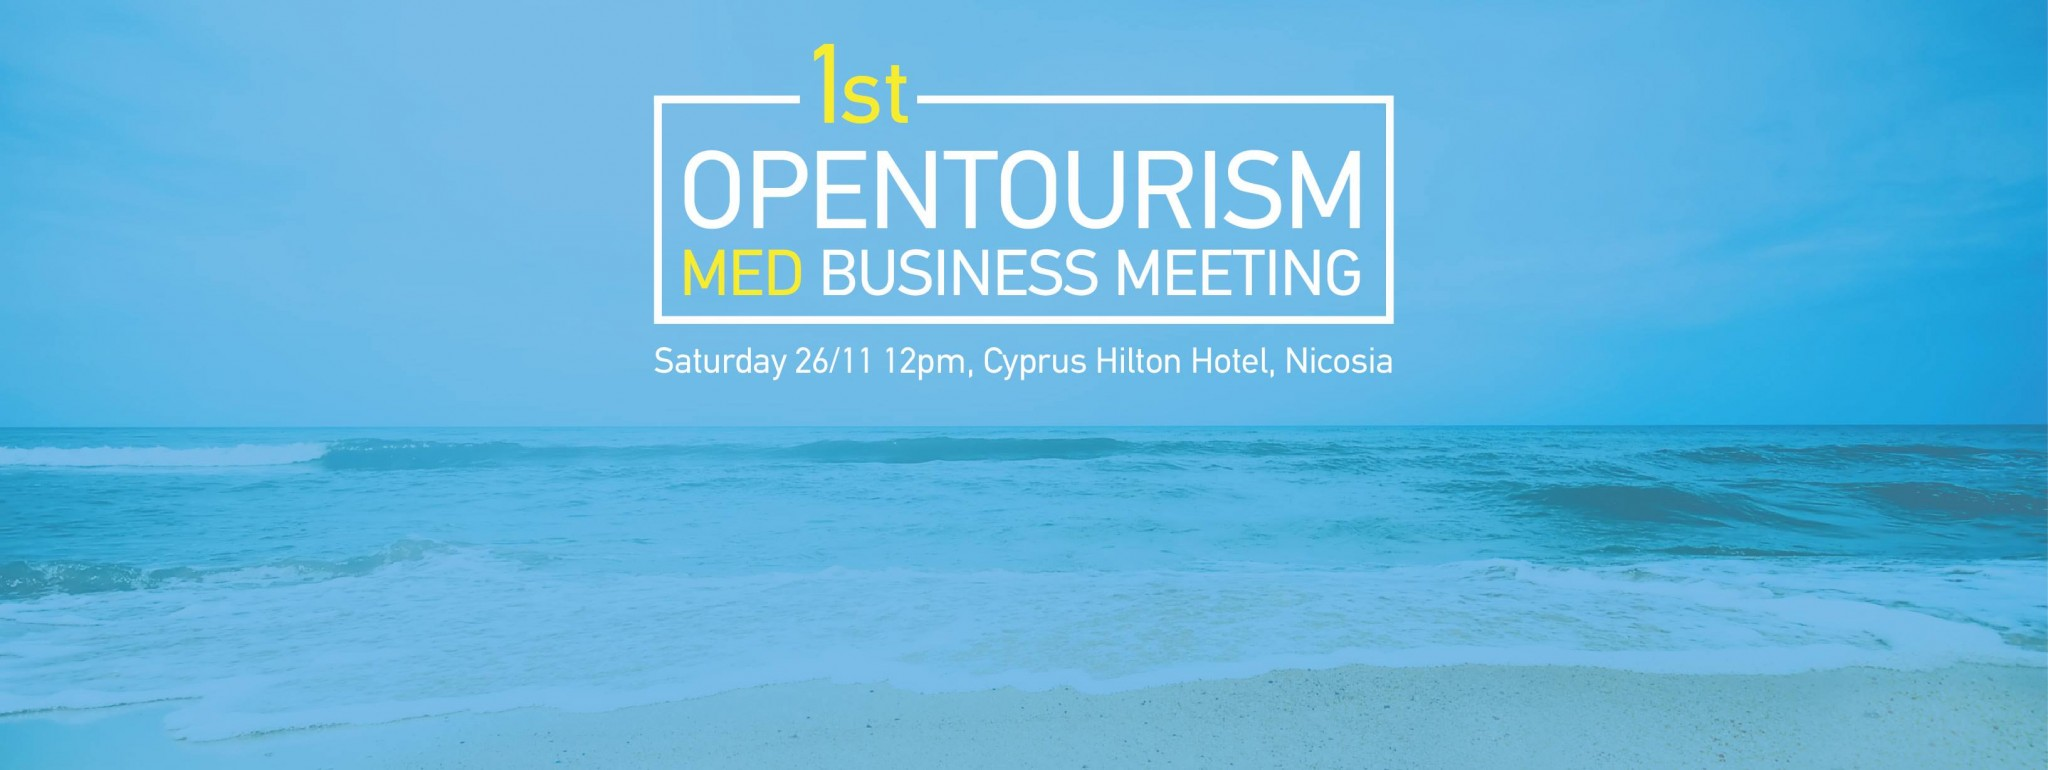 1st-opentourism-med-business-meeting-cyprusinno-cyprus